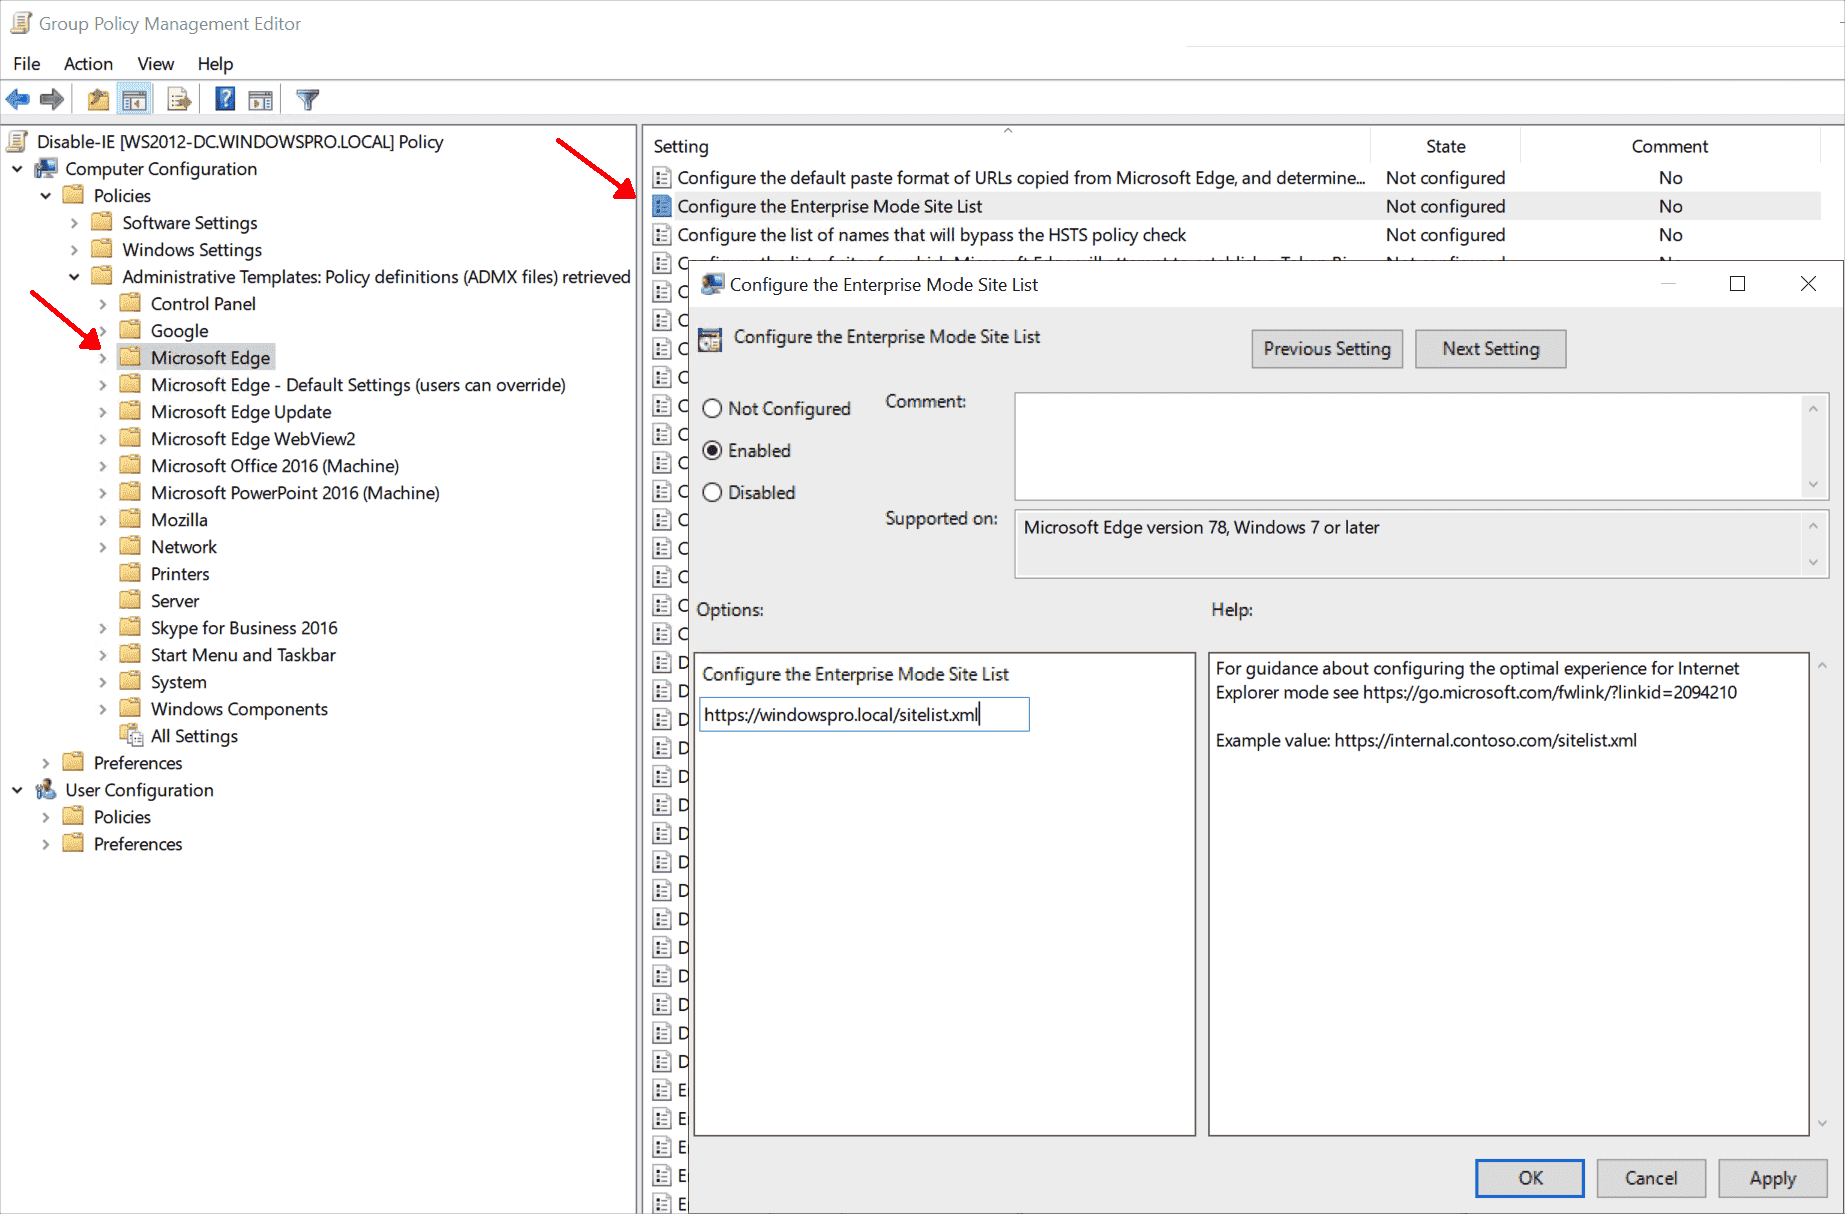 Distribute the list of URLs to be opened automatically in IE via GPO